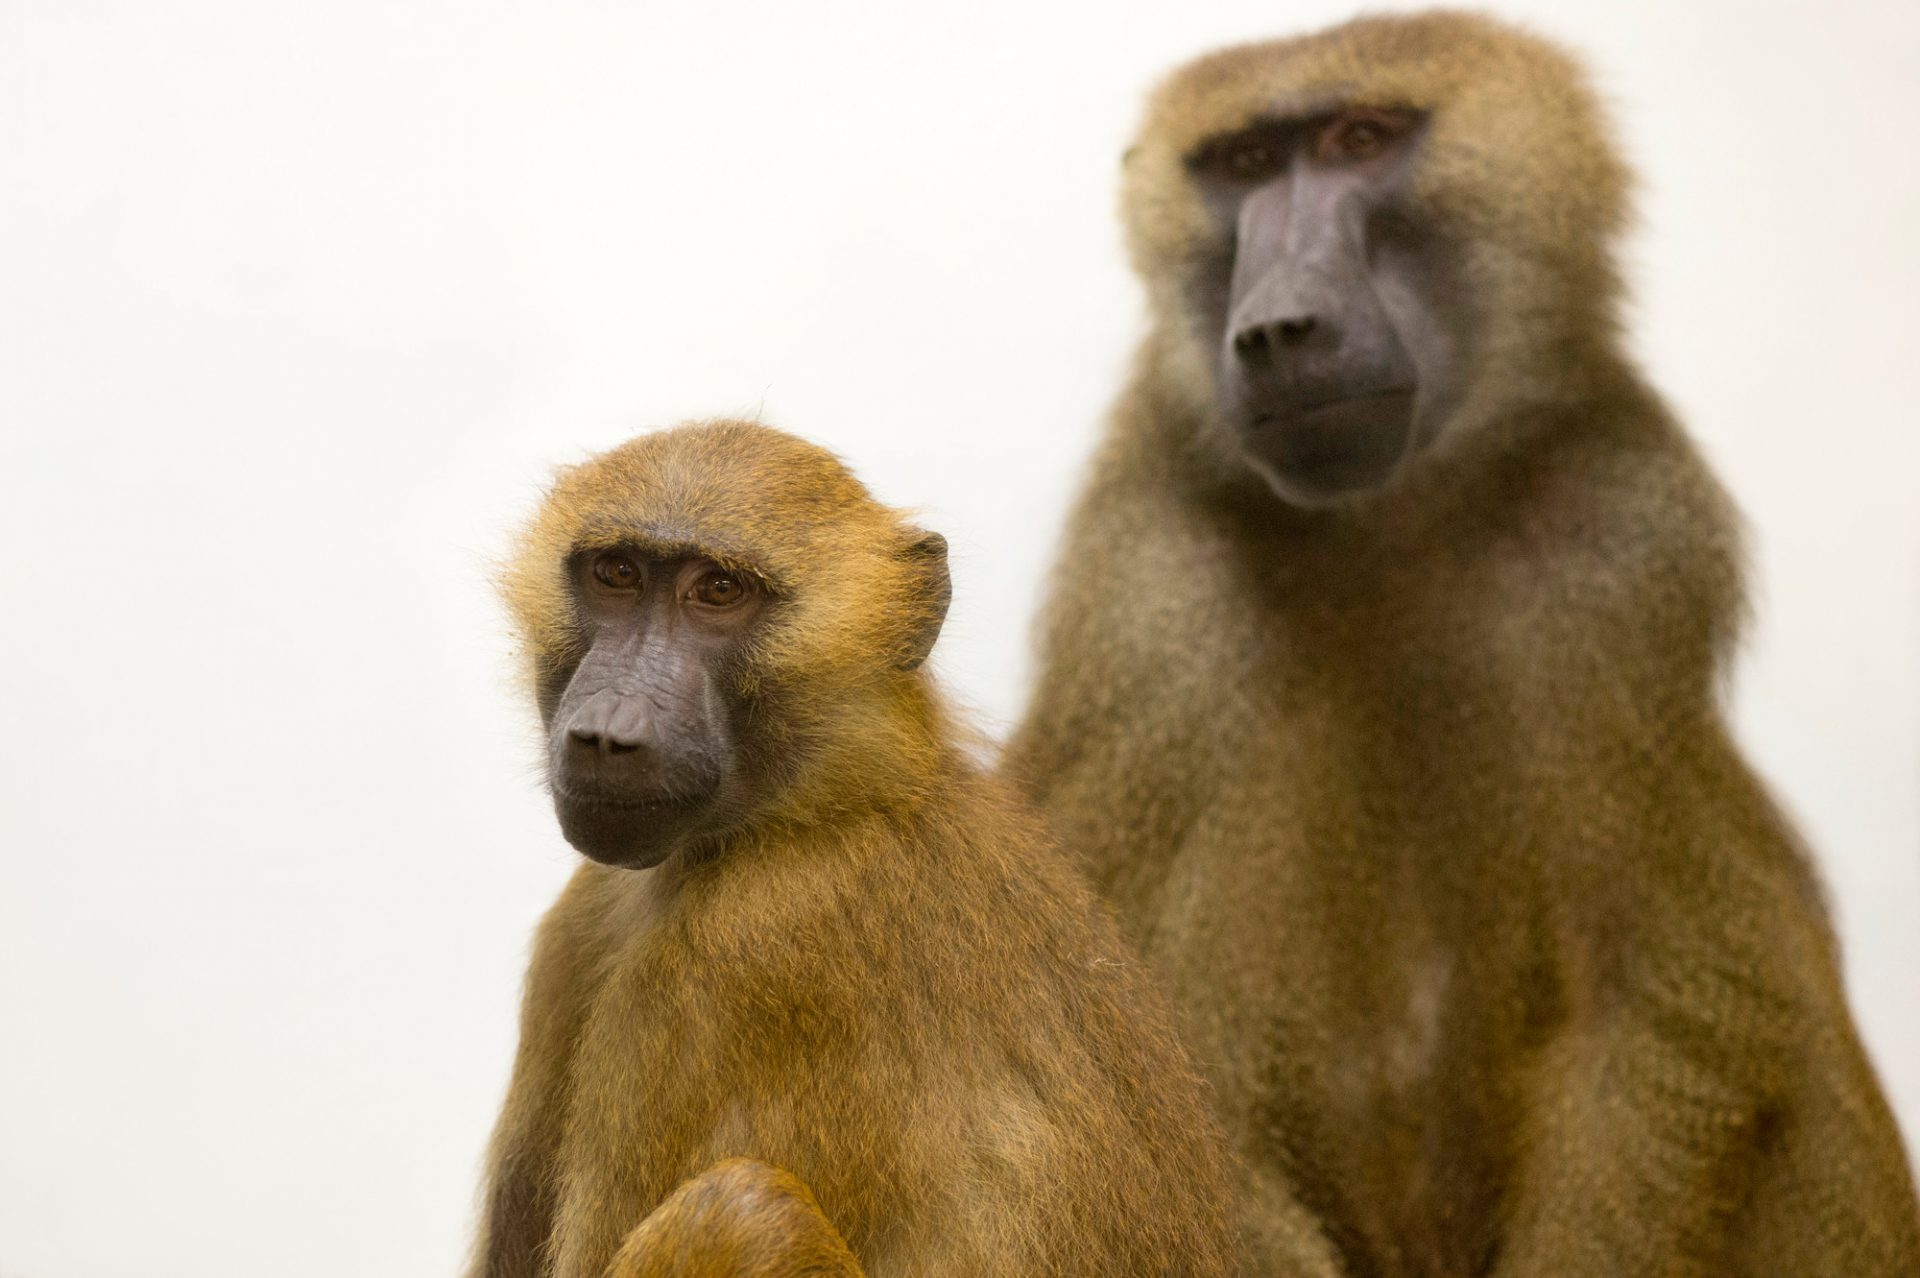 A pair of Guinea baboons (Papio papio) at the Indianapolis Zoo.